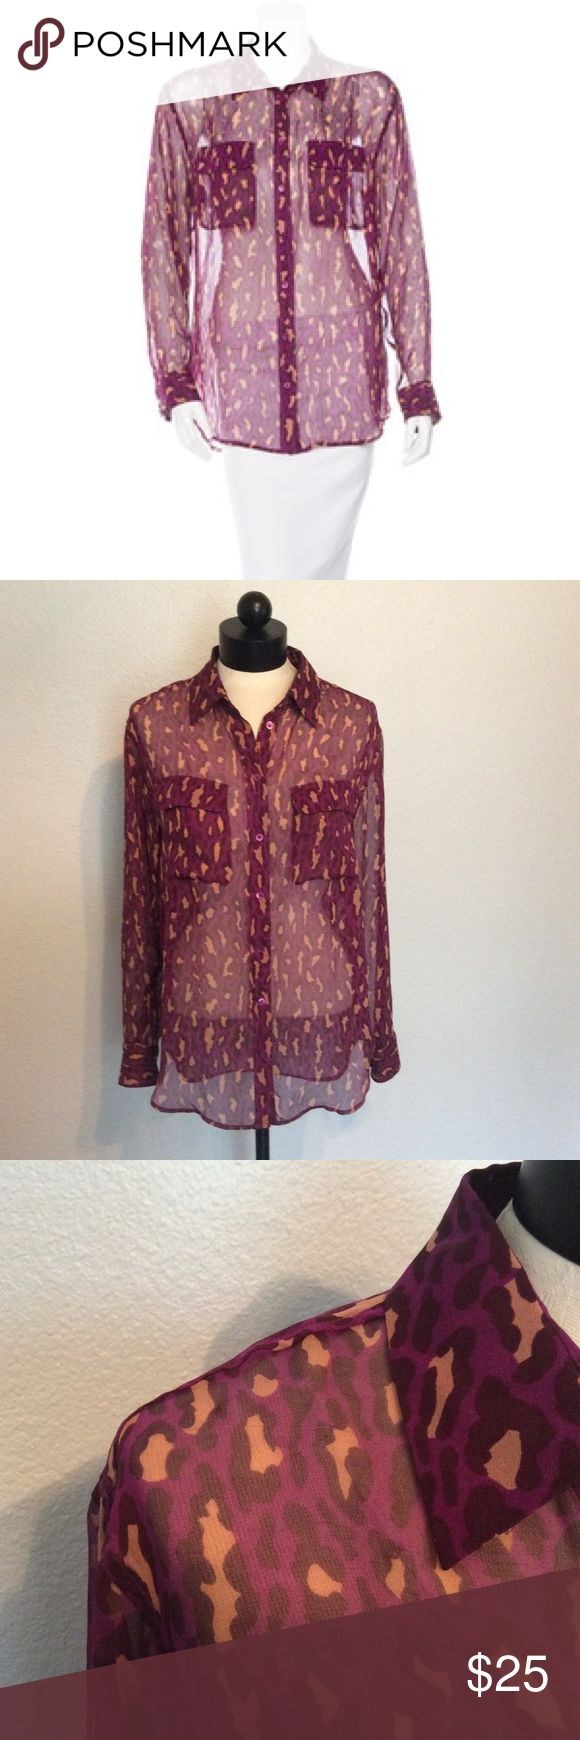 Equipment Leopard Shirt Gently worn. 100% silk, two small snags pictured on 2nd and 4th picture. Not very noticeable. No trades, no pp. Equipment Tops Button Down Shirts